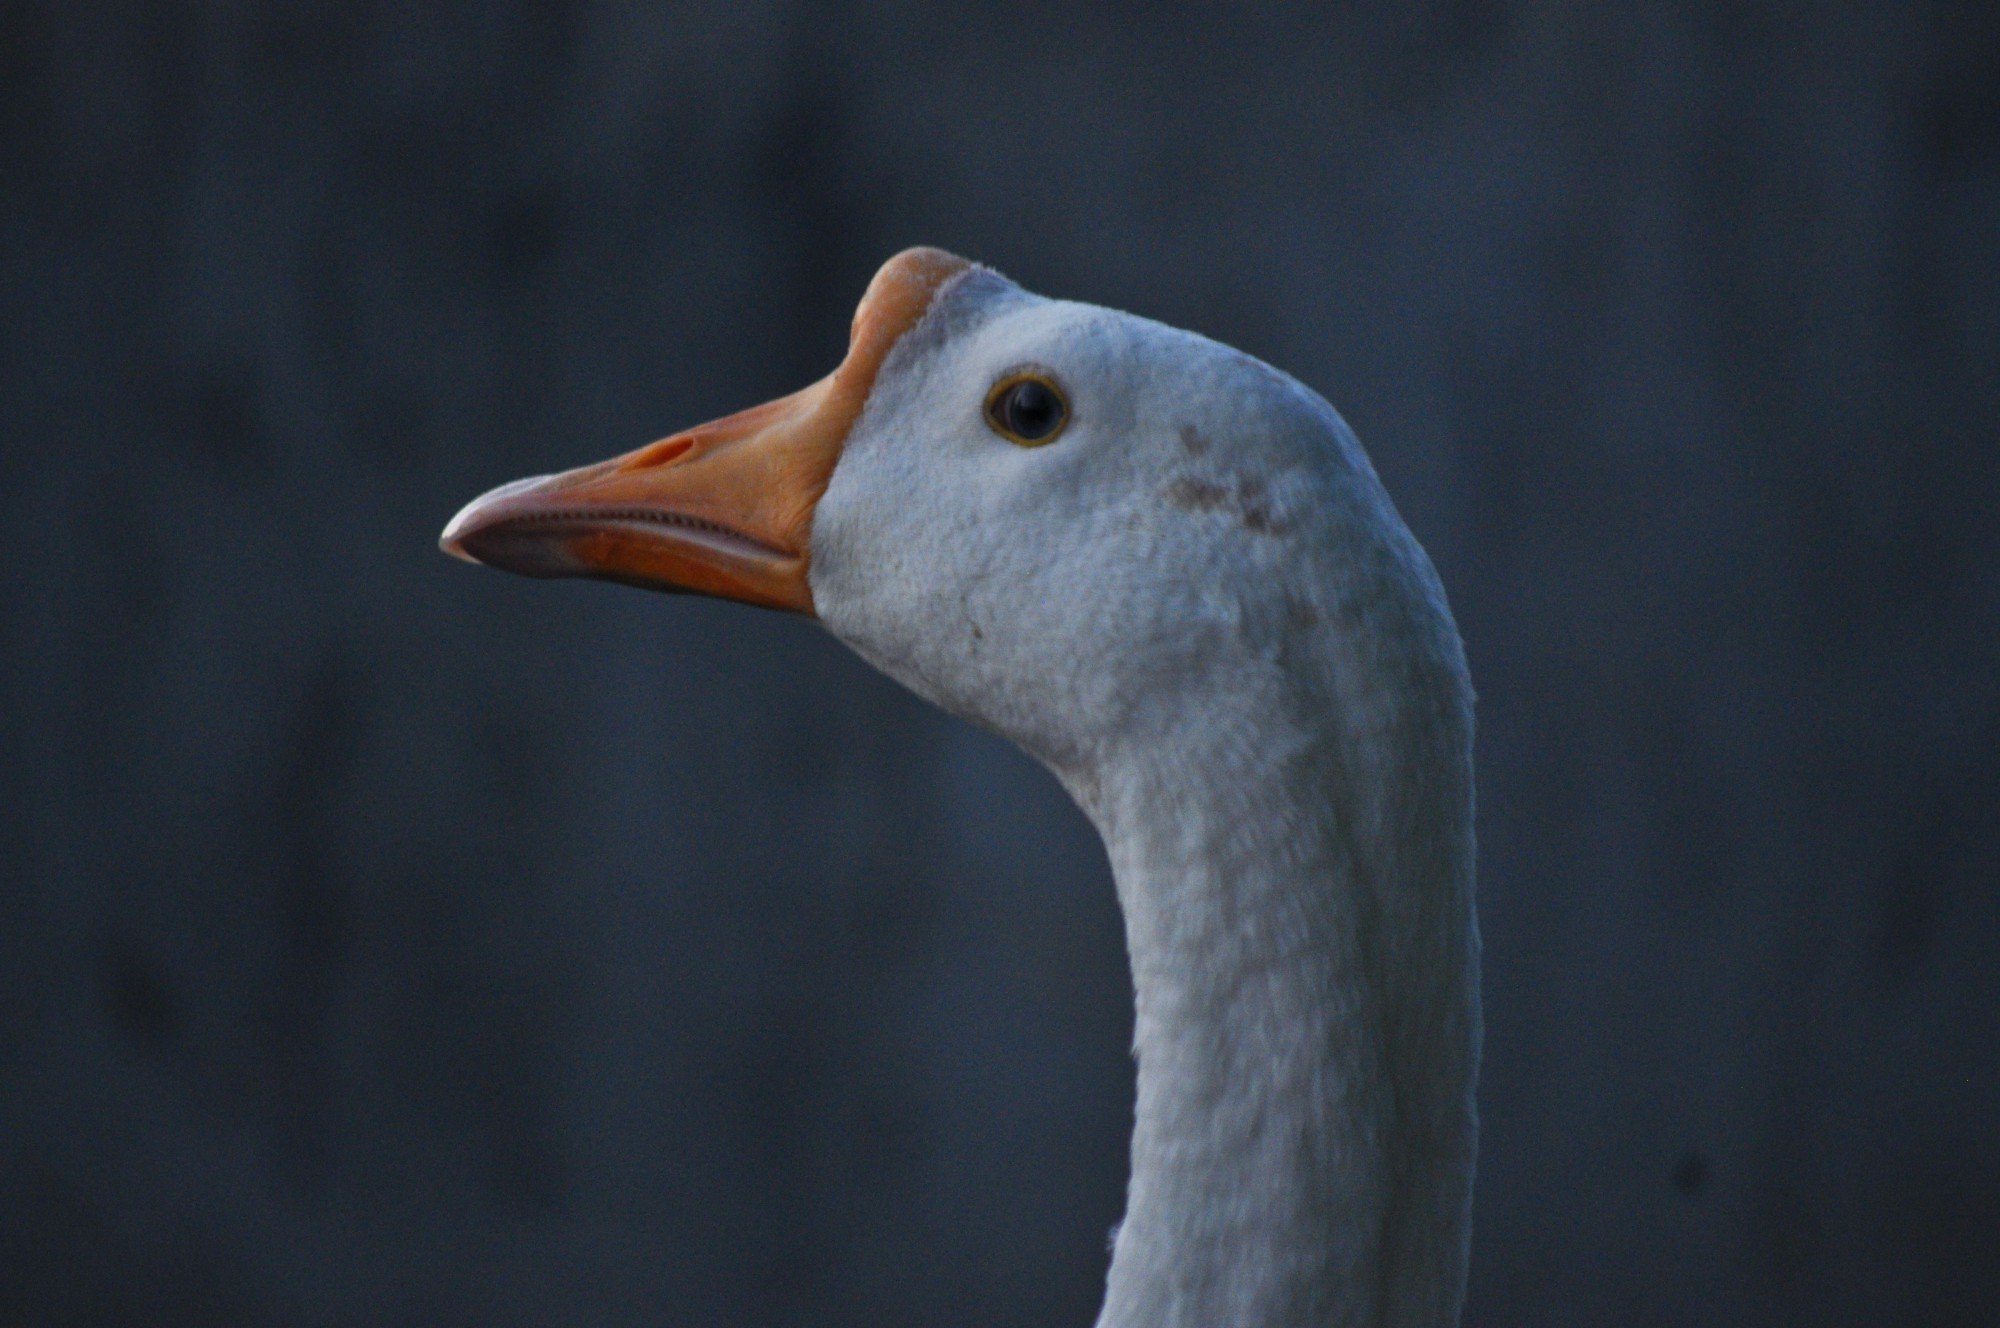 A duck image